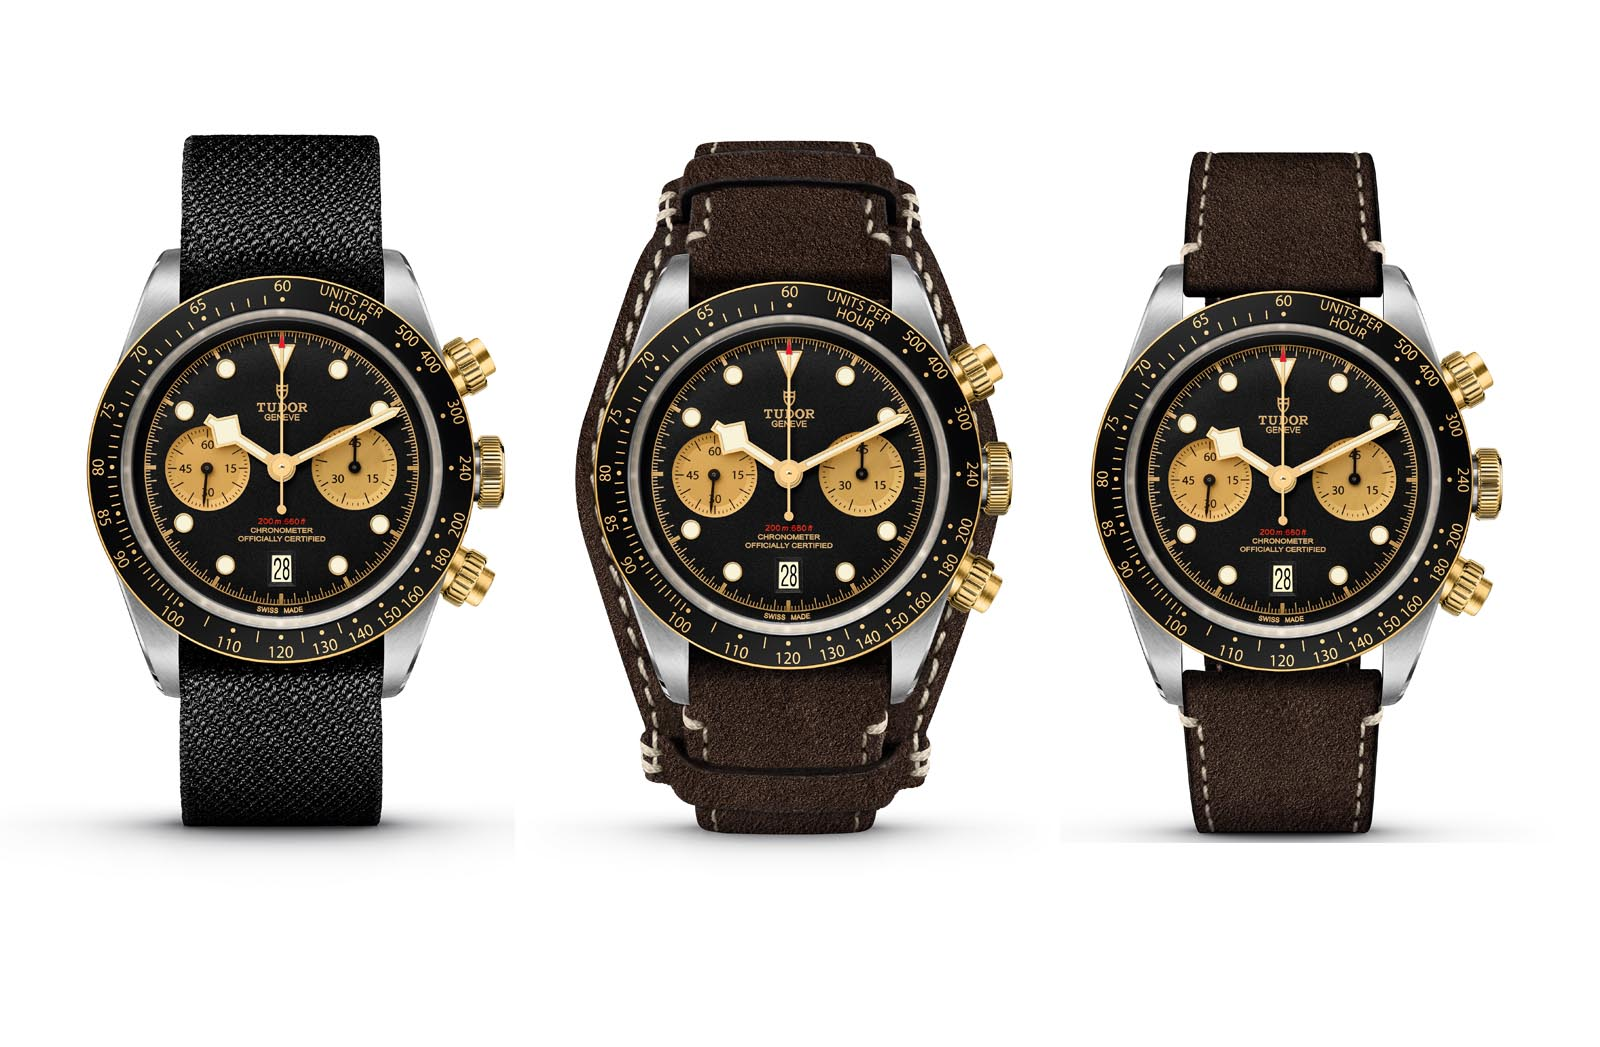 Tudor Black Bay Chronograph S&G 4